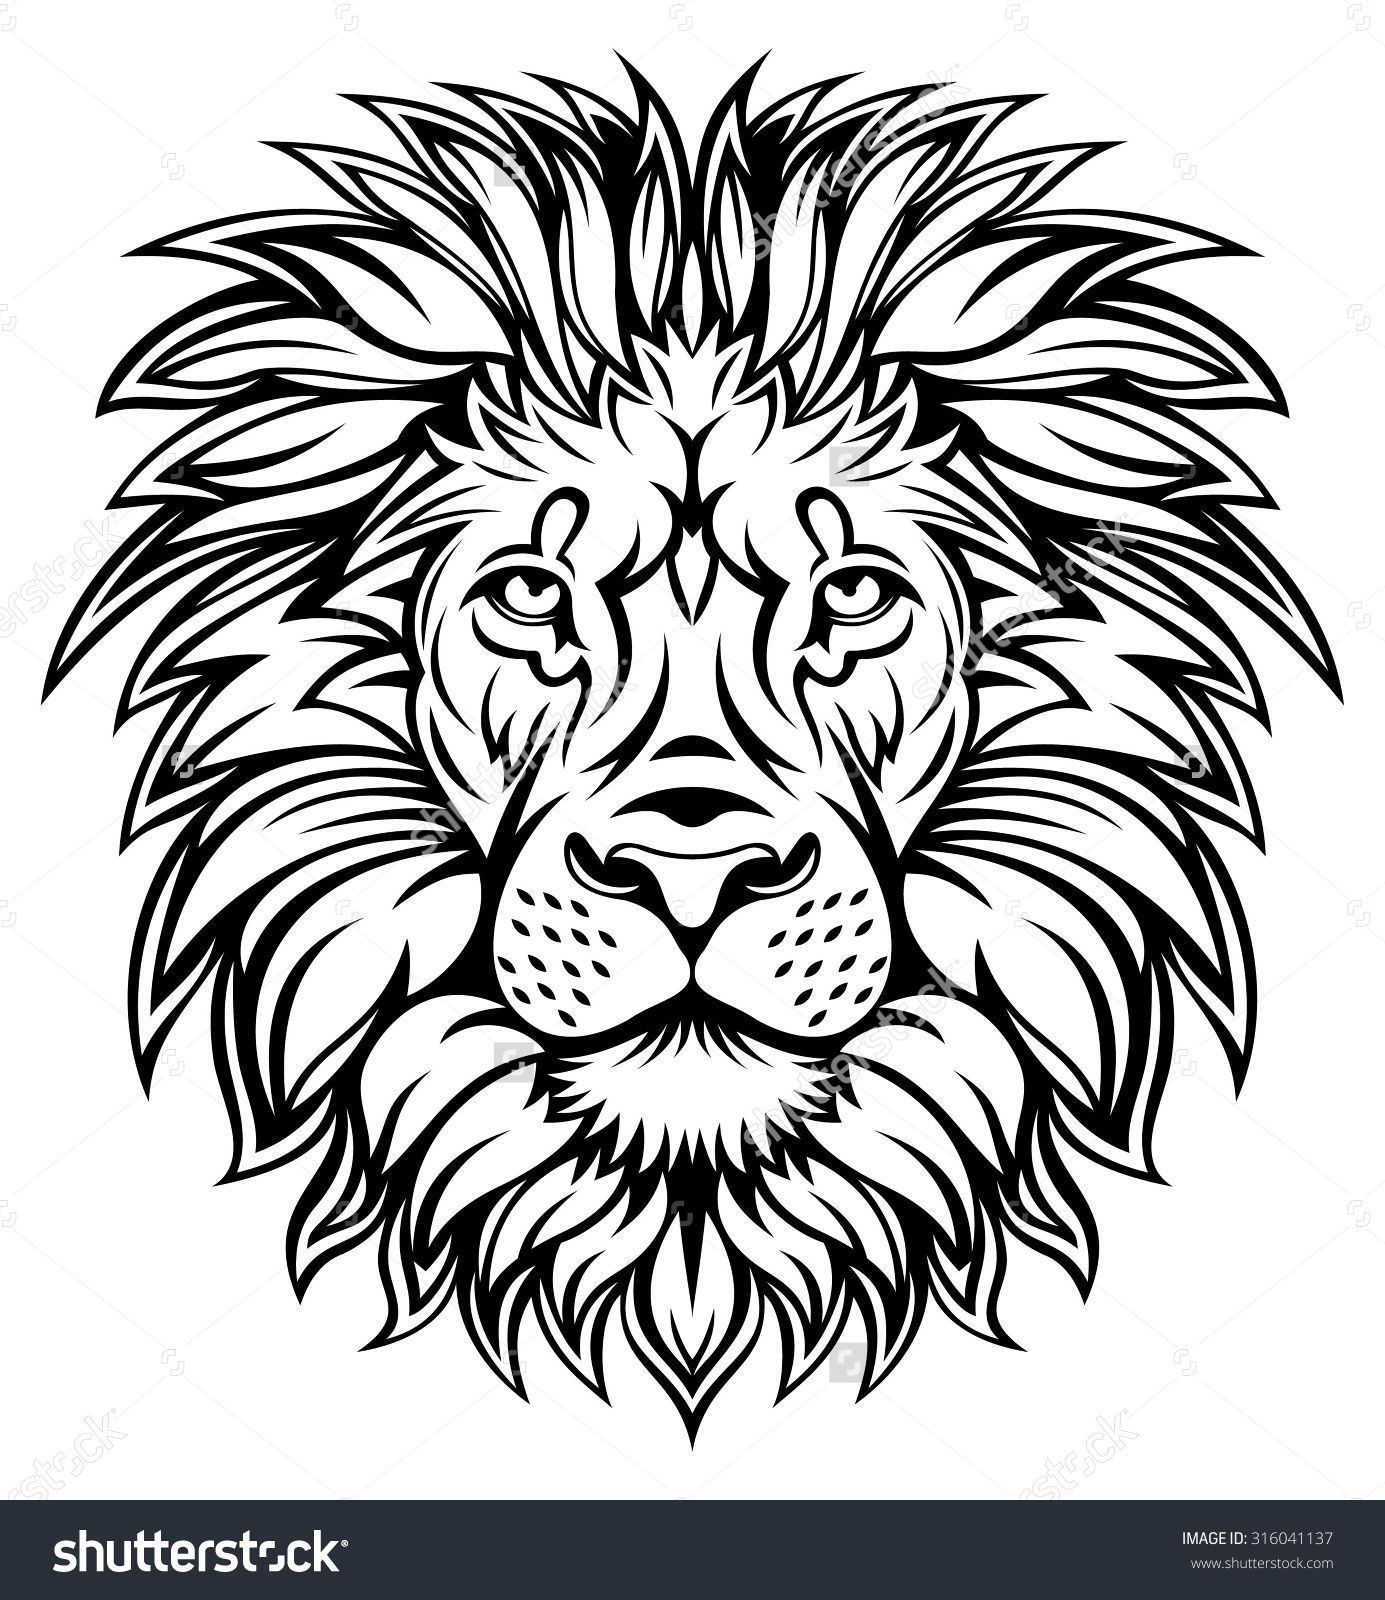 Line Drawing Lion Face : Line drawing lion head imgkid the image kid